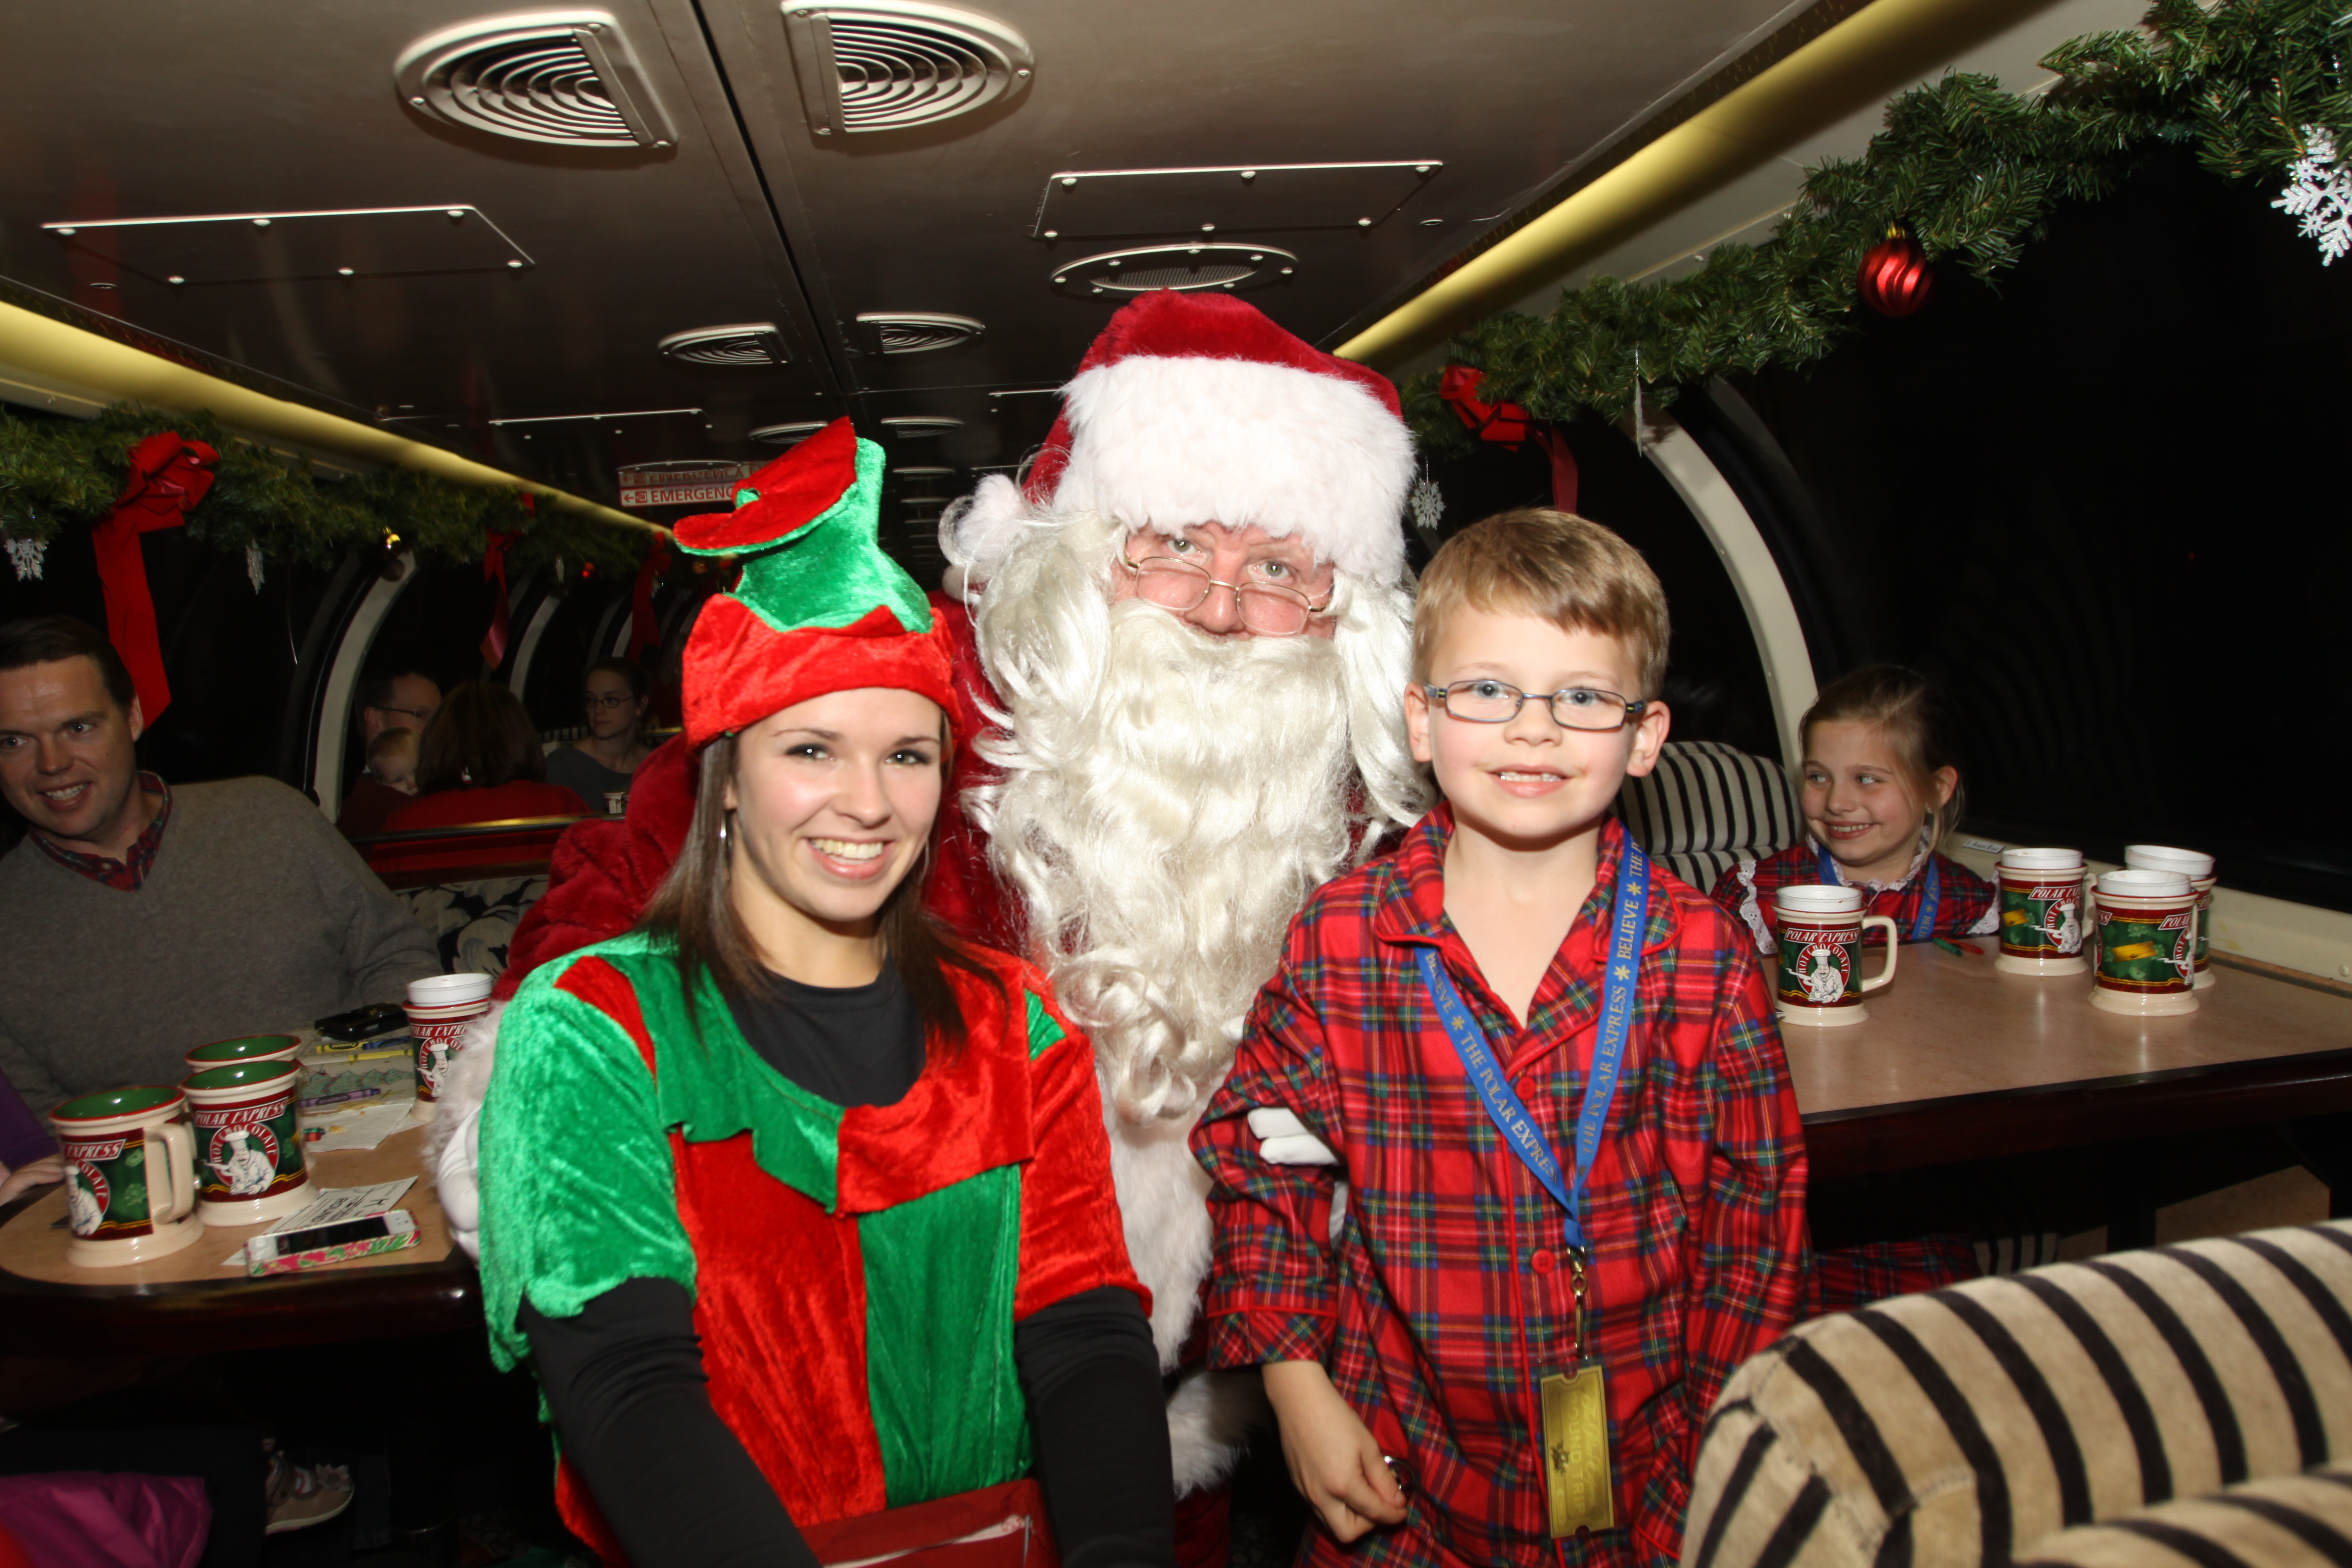 premier rail collections 2014 the polar express train ride and train to christmas town far exceed expectations with 50 percent growth in ridership